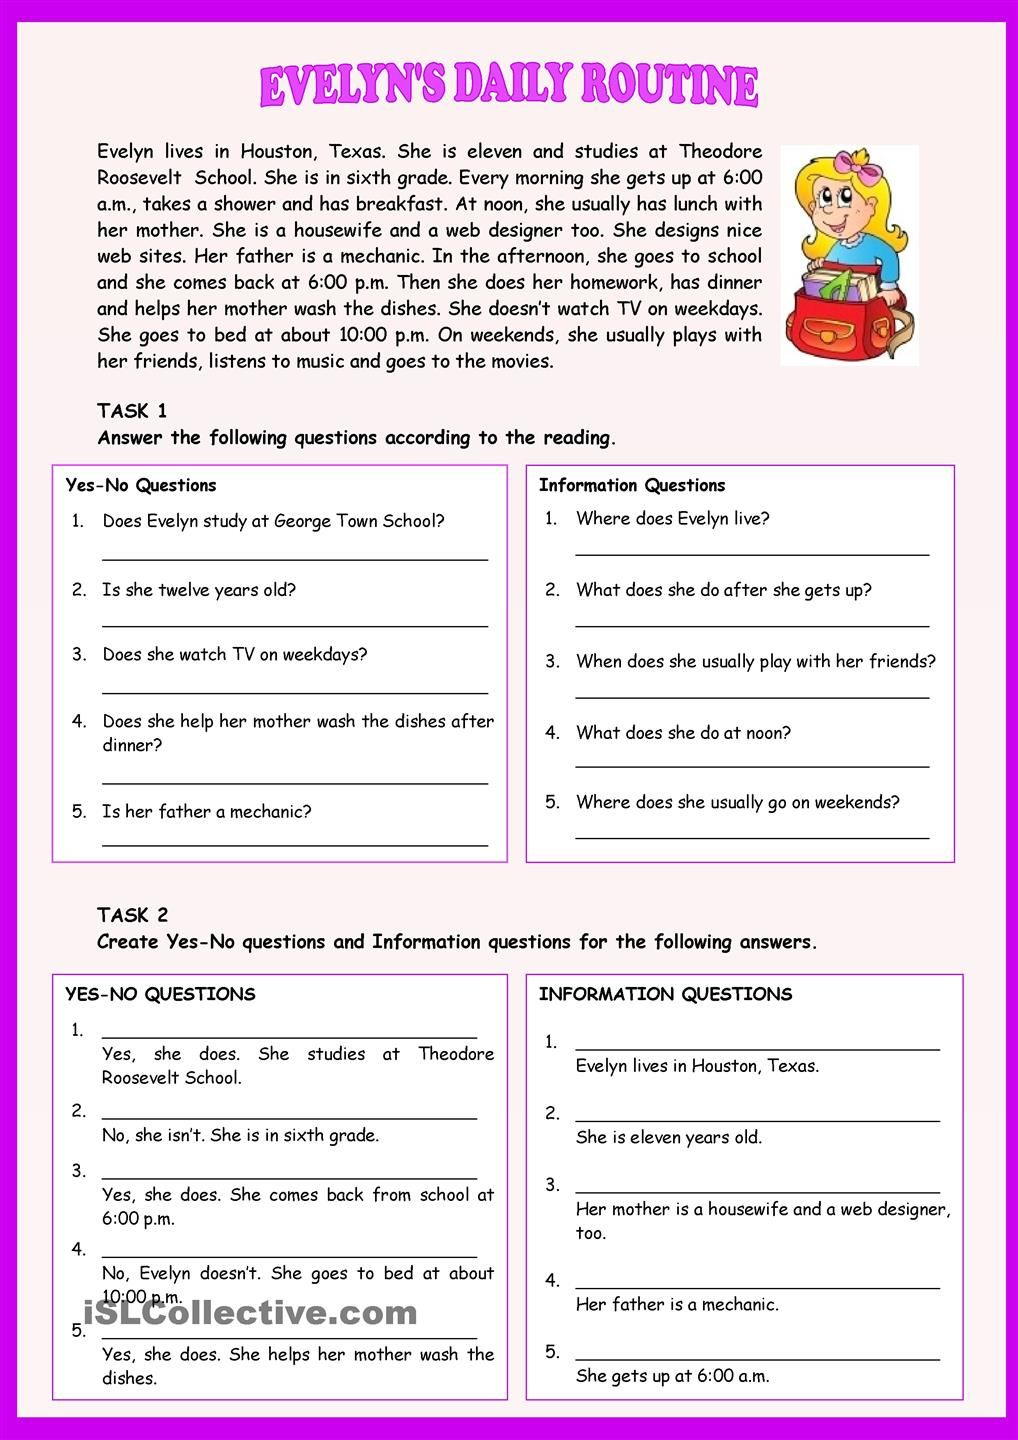 Worksheets Daily Grammar Practice Worksheets evelyns daily routine present simple pinterest english a worksheet for students to practice activities it contains text two exercises with yes no and information questions